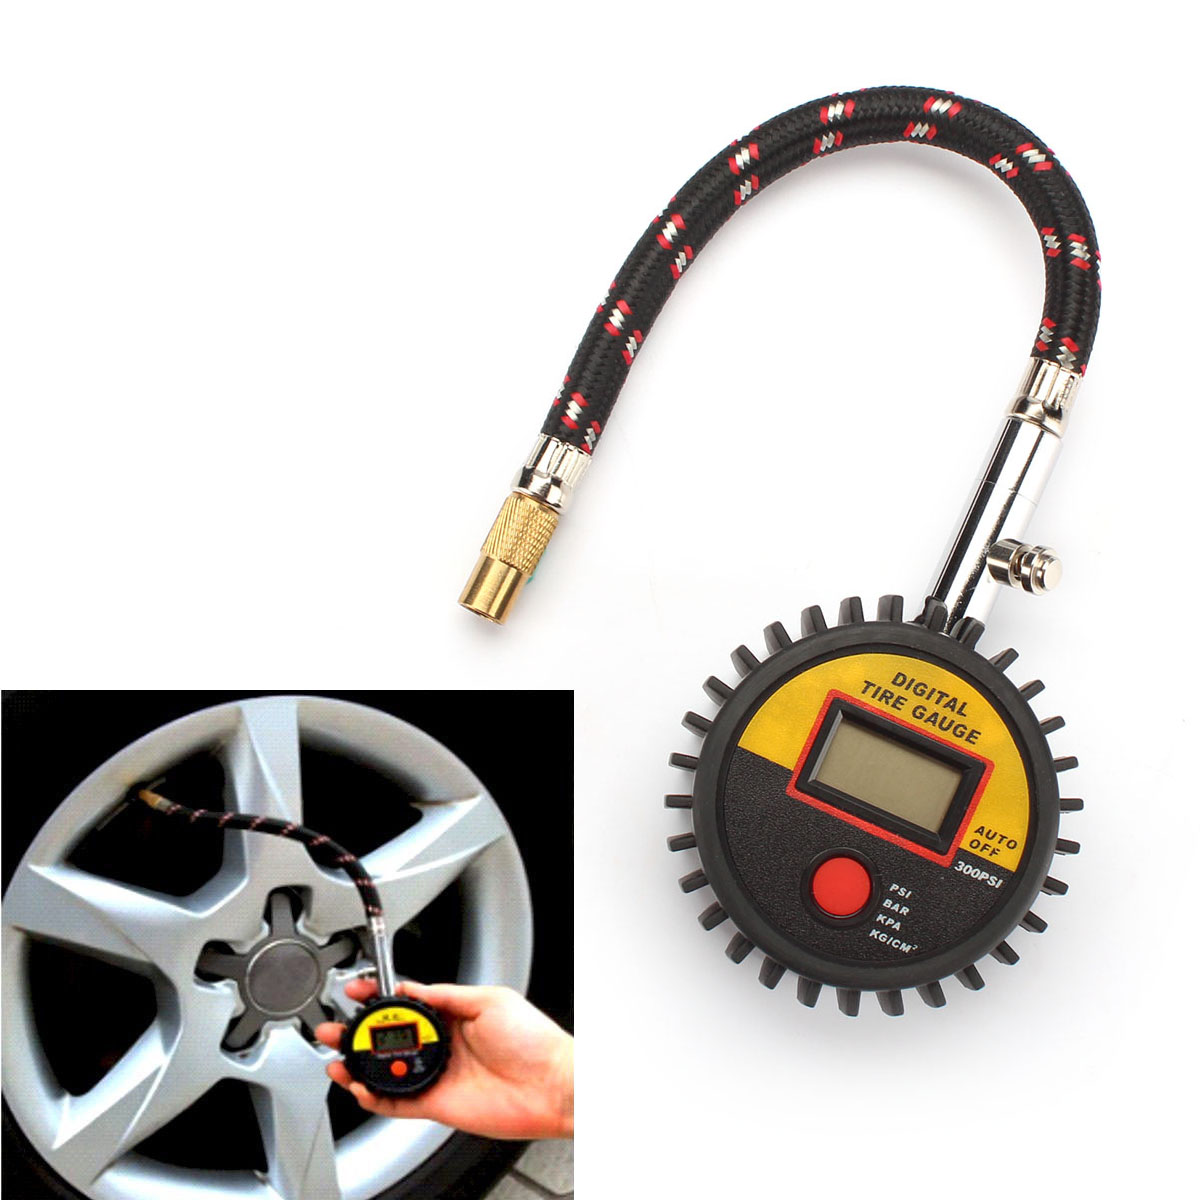 new digital 300 psi tire air pressure gauge meter tester car motorcycle bike ebay. Black Bedroom Furniture Sets. Home Design Ideas